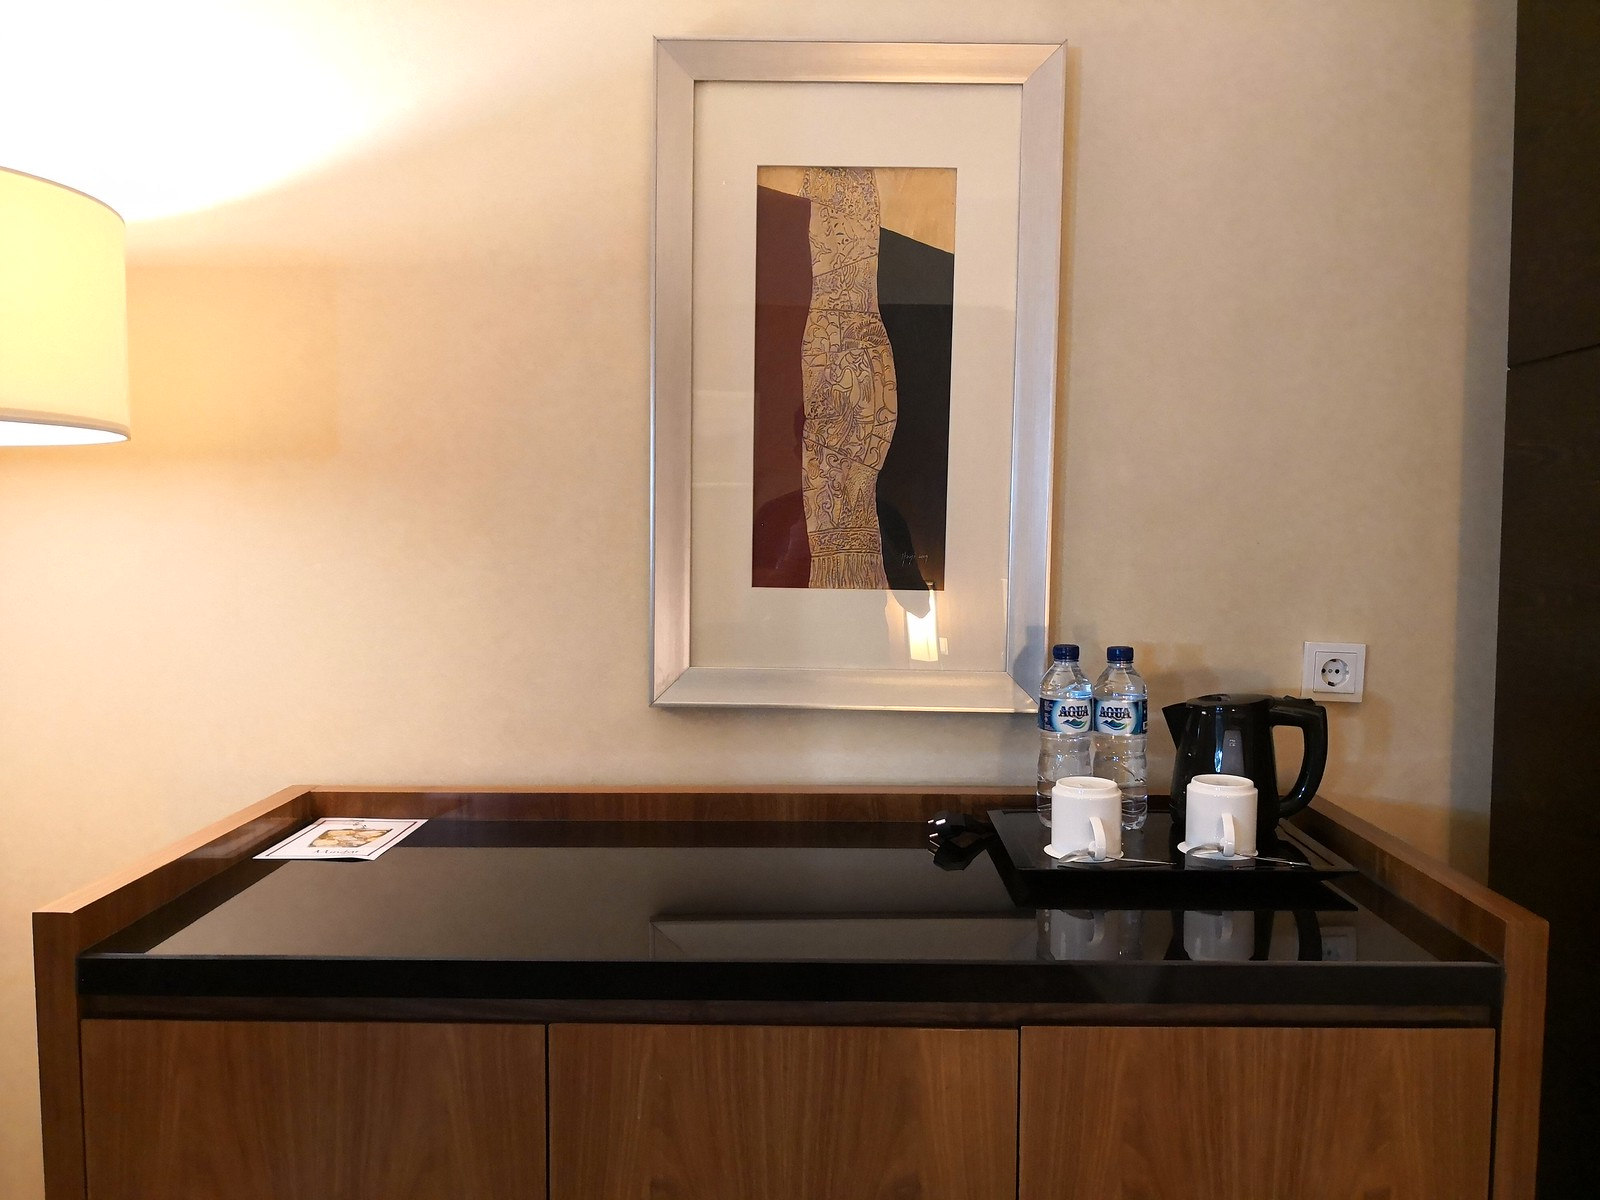 Minibar console in the room